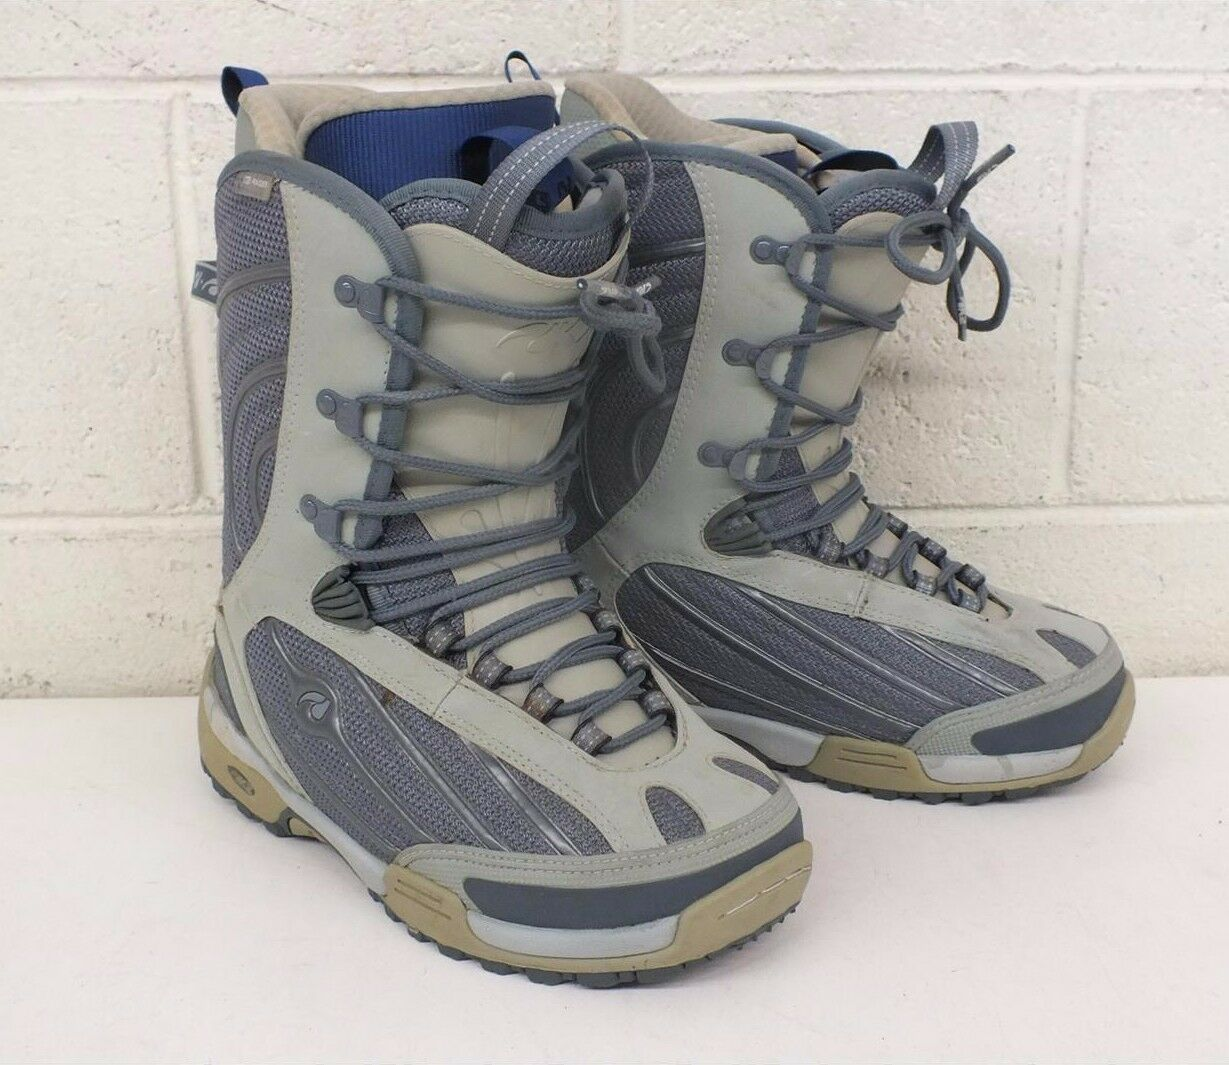 K2 Raider SureFit All-Mountain Snowboard Boots US Men's 8 Fast Shipping